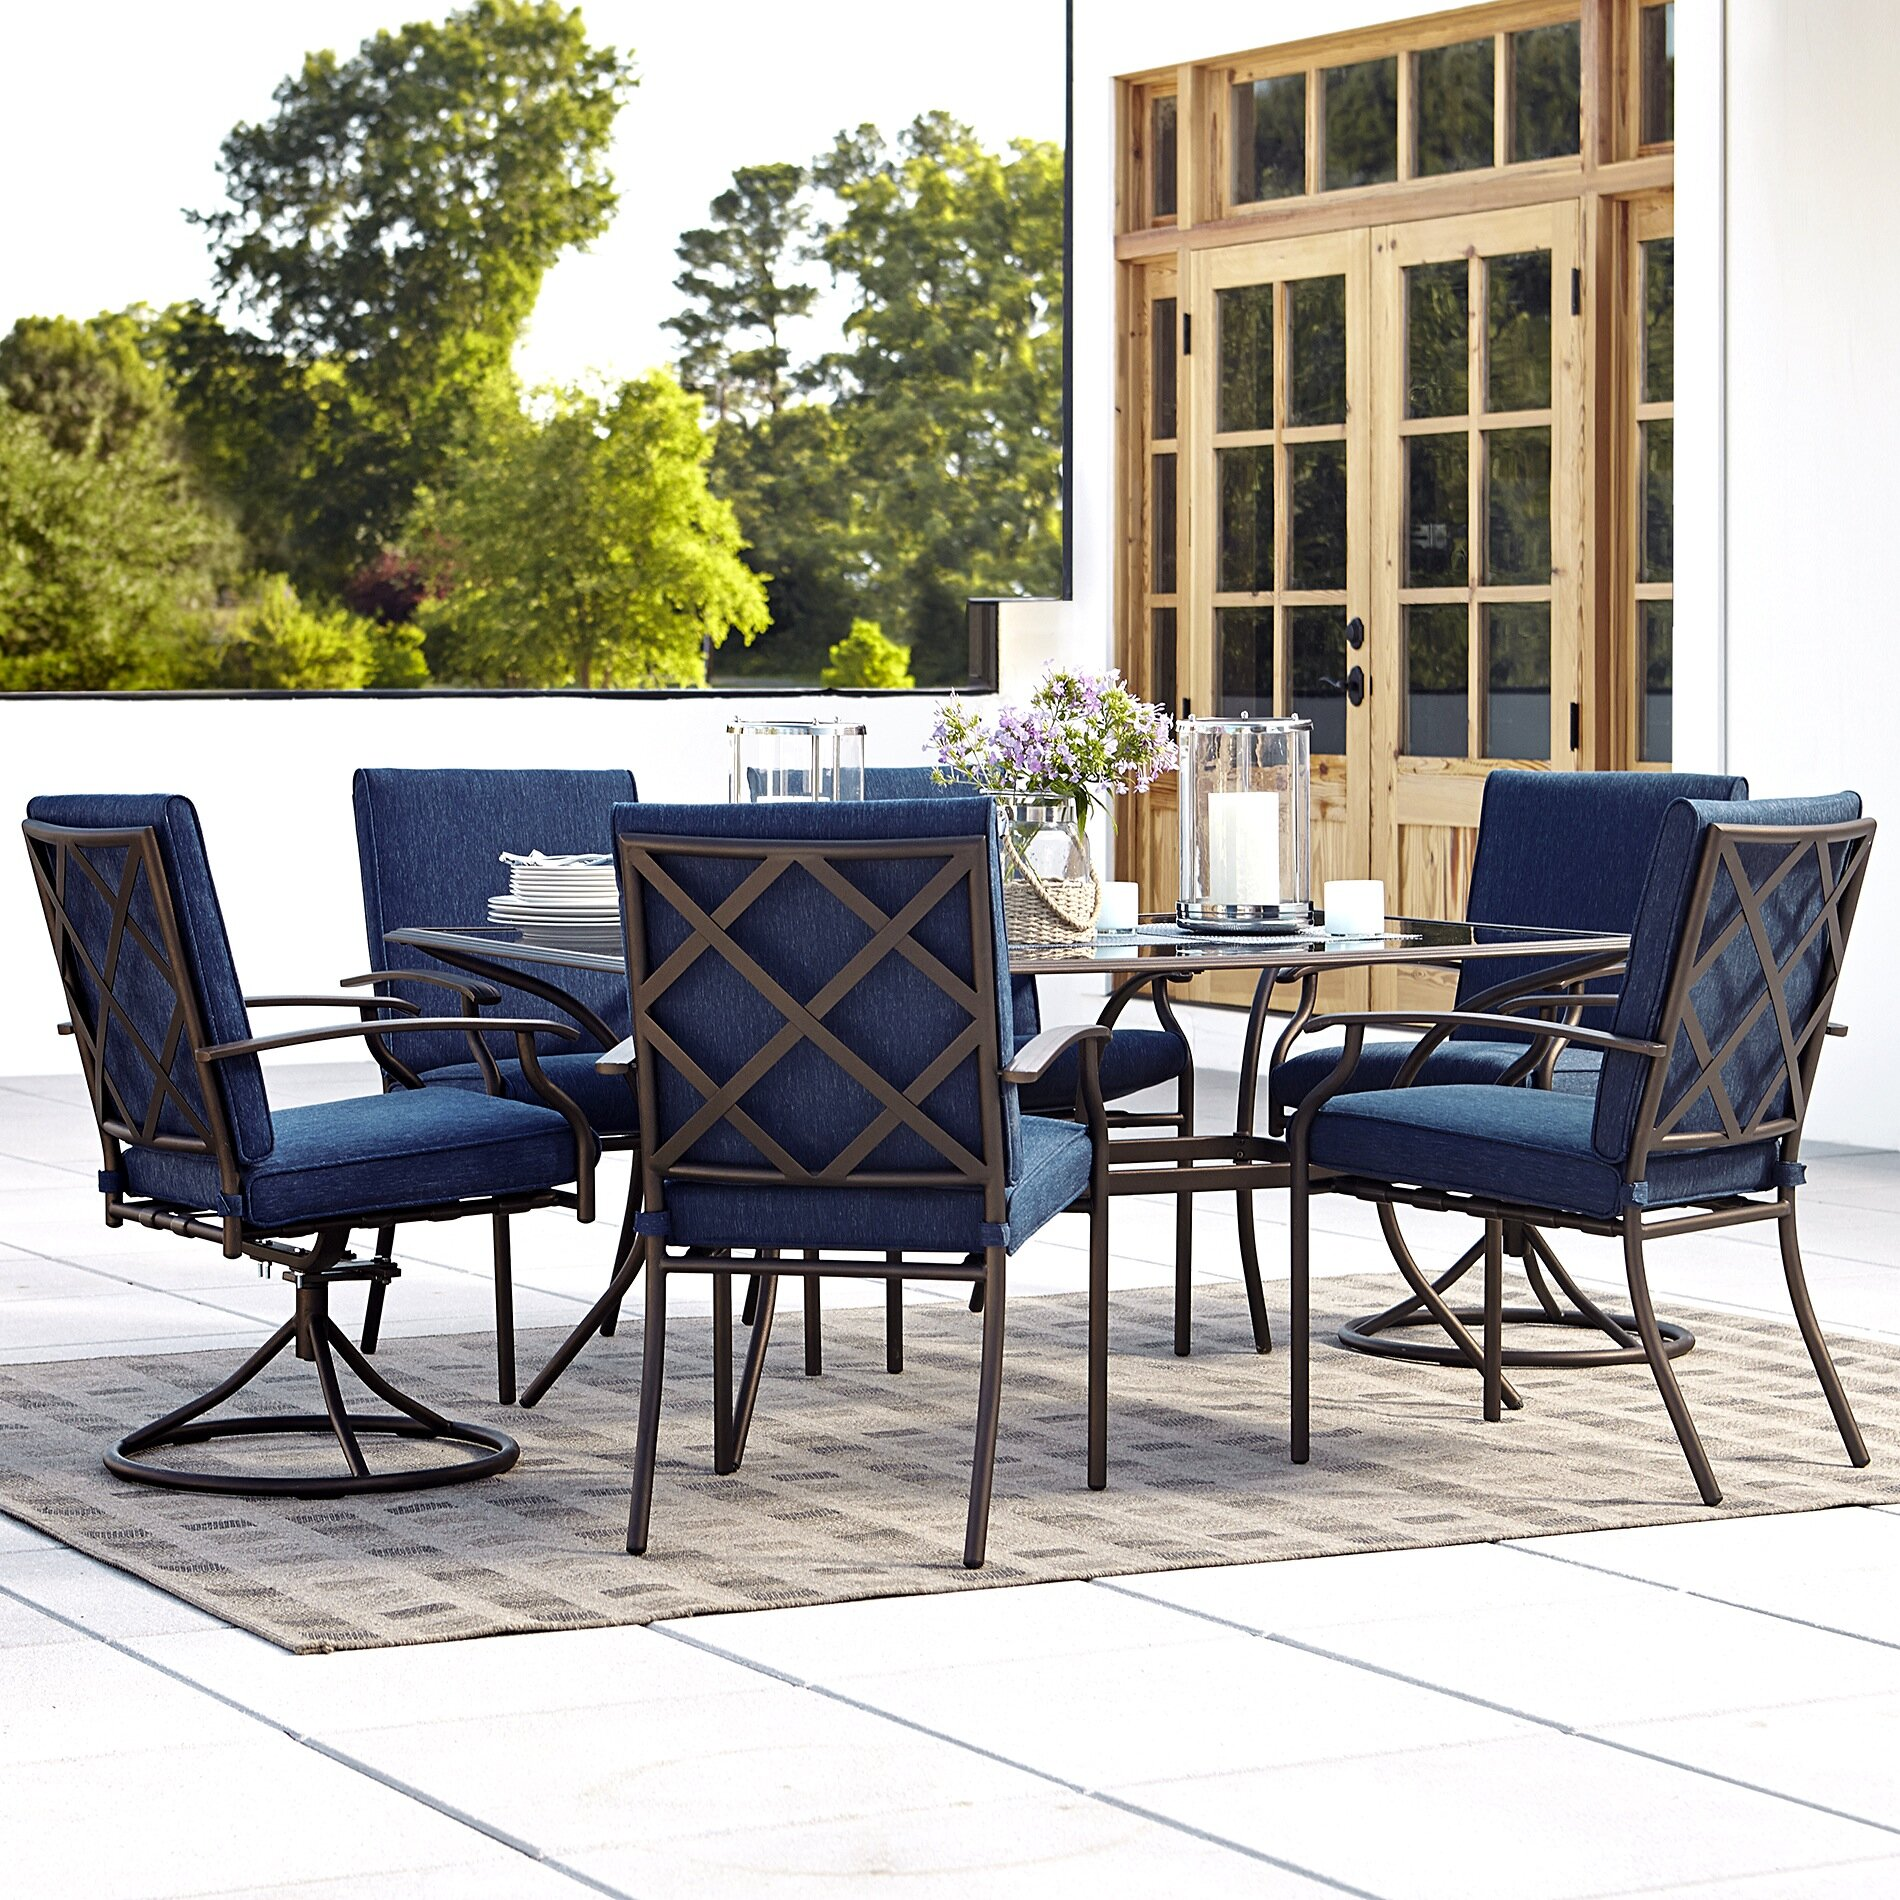 Sears Outlet Patio Furniture | Outdoor Sofa Sets Clearance | Cheap Outdoor Table and Chairs